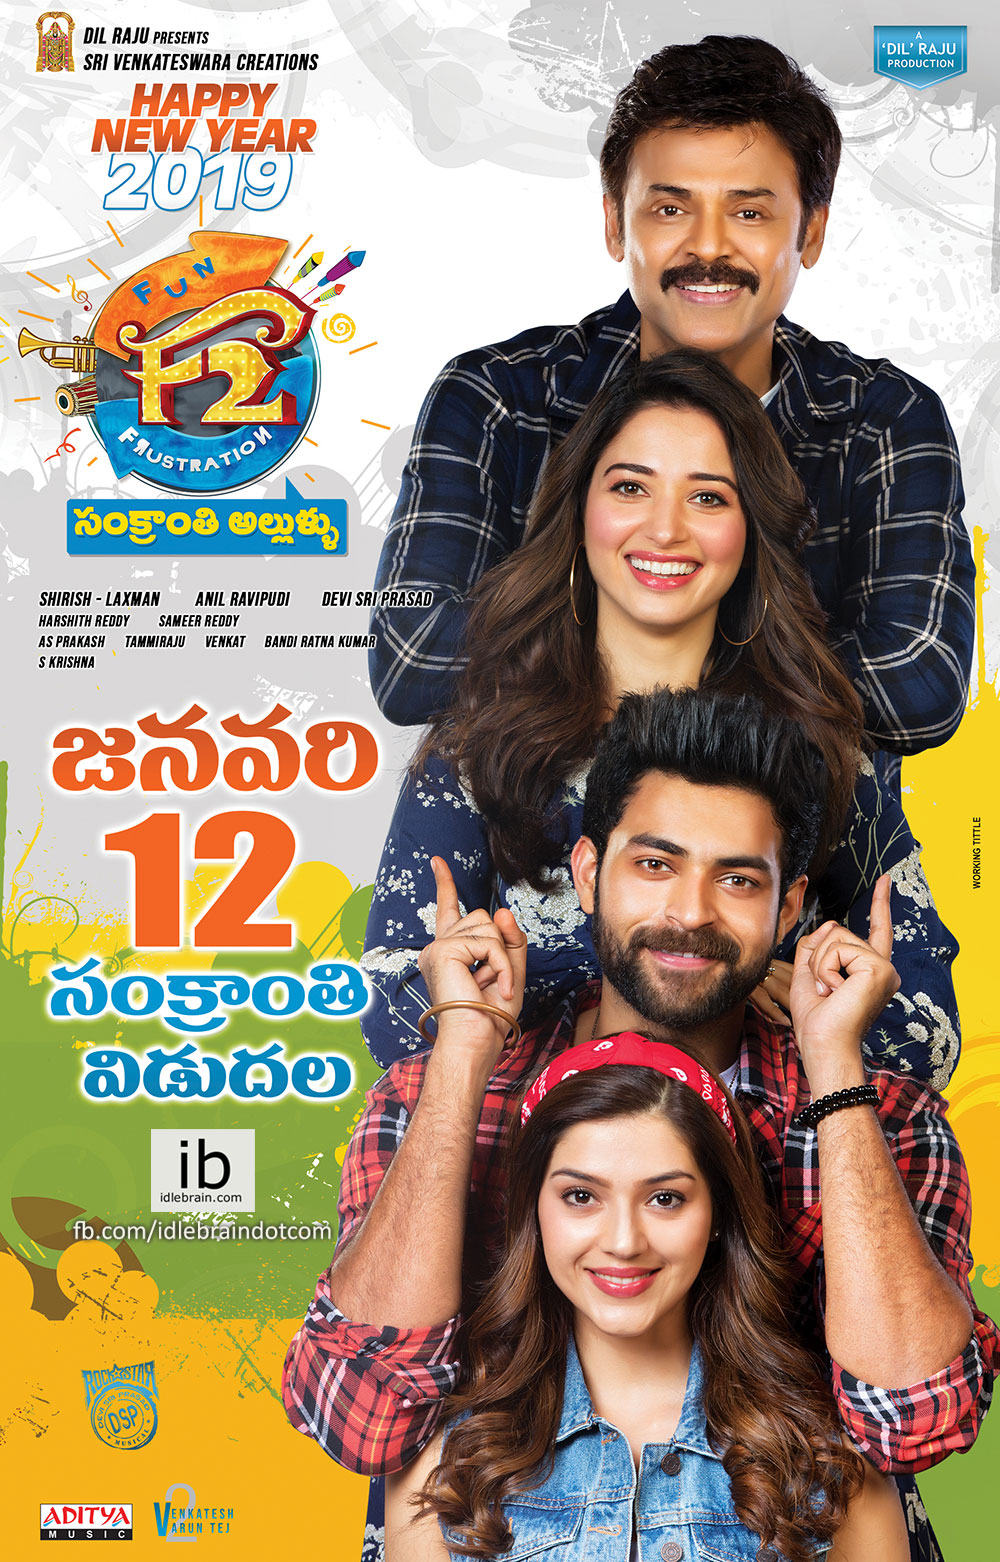 F2 Fun and Frustration 2019 Hindi Dubbed 720p HDRip 1.3GB Download